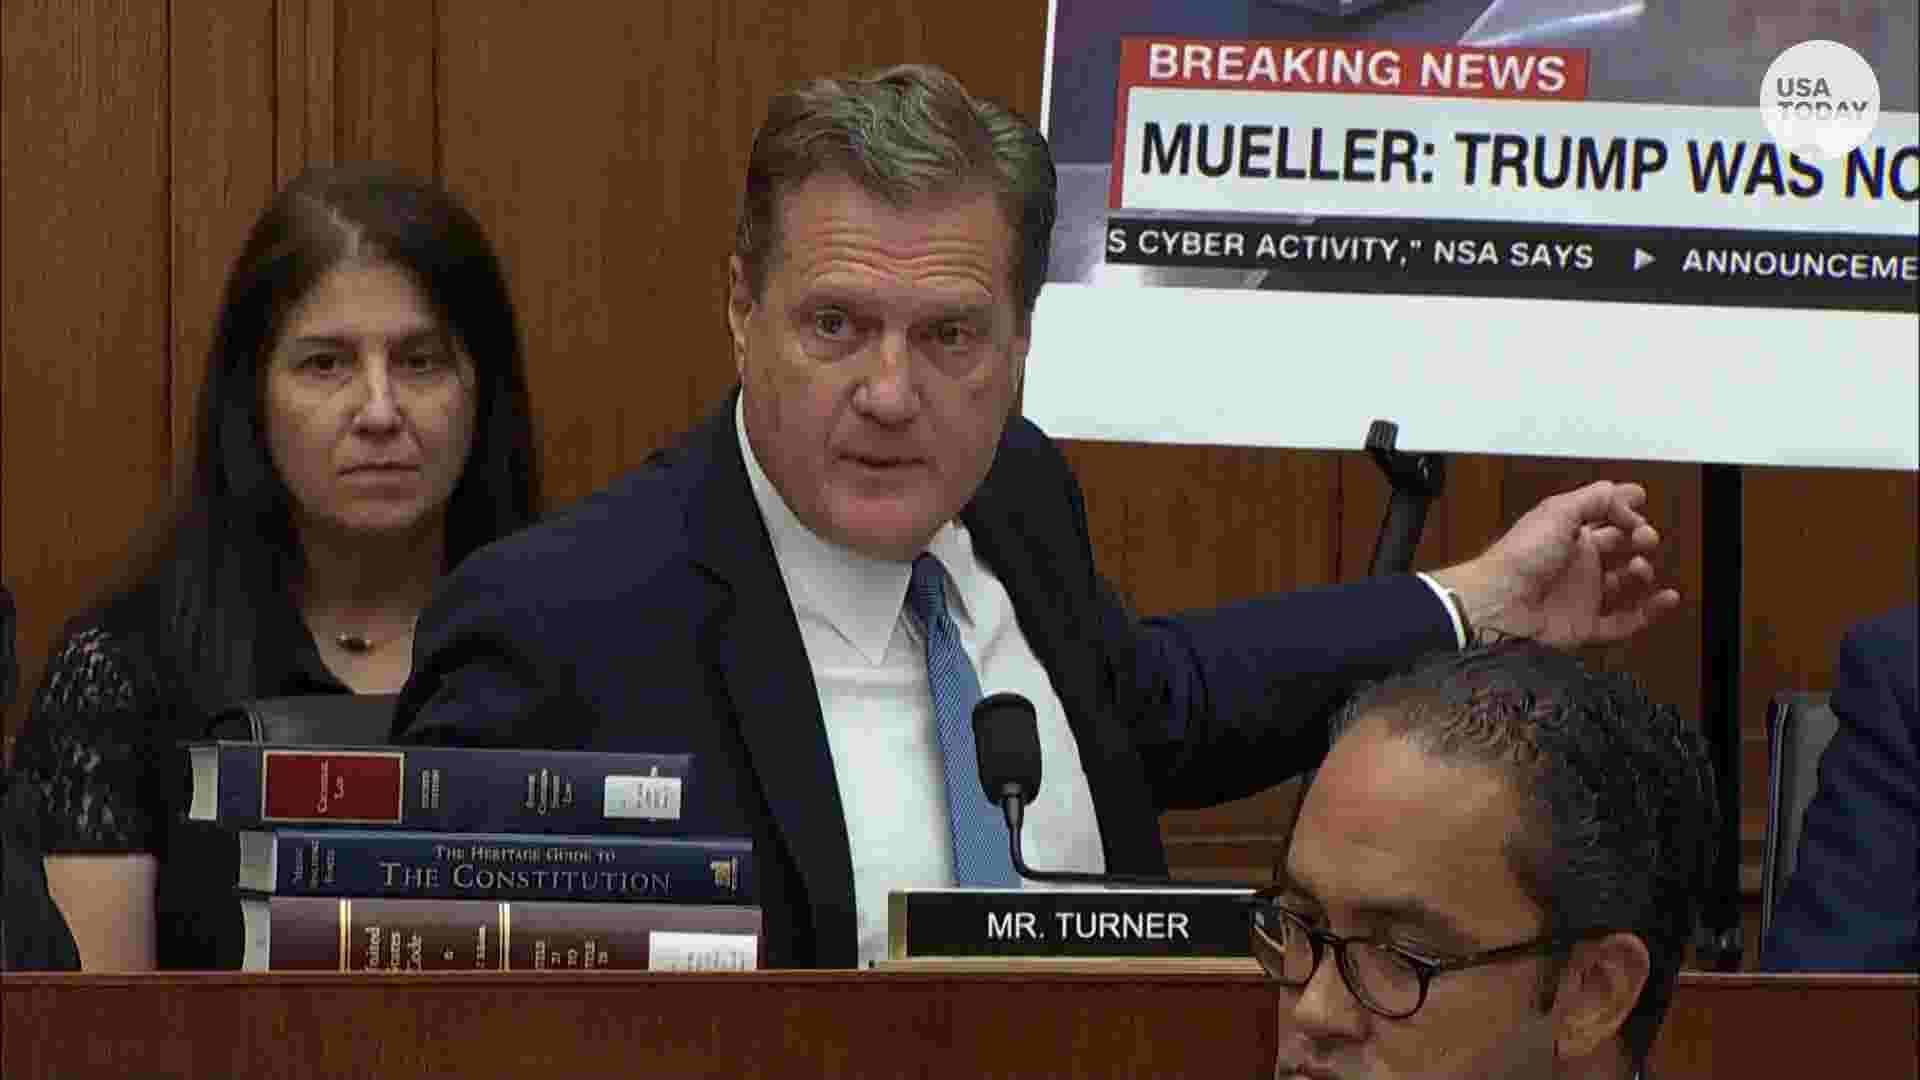 Robert Mueller testimony: Michael Turner says no one can exonerate